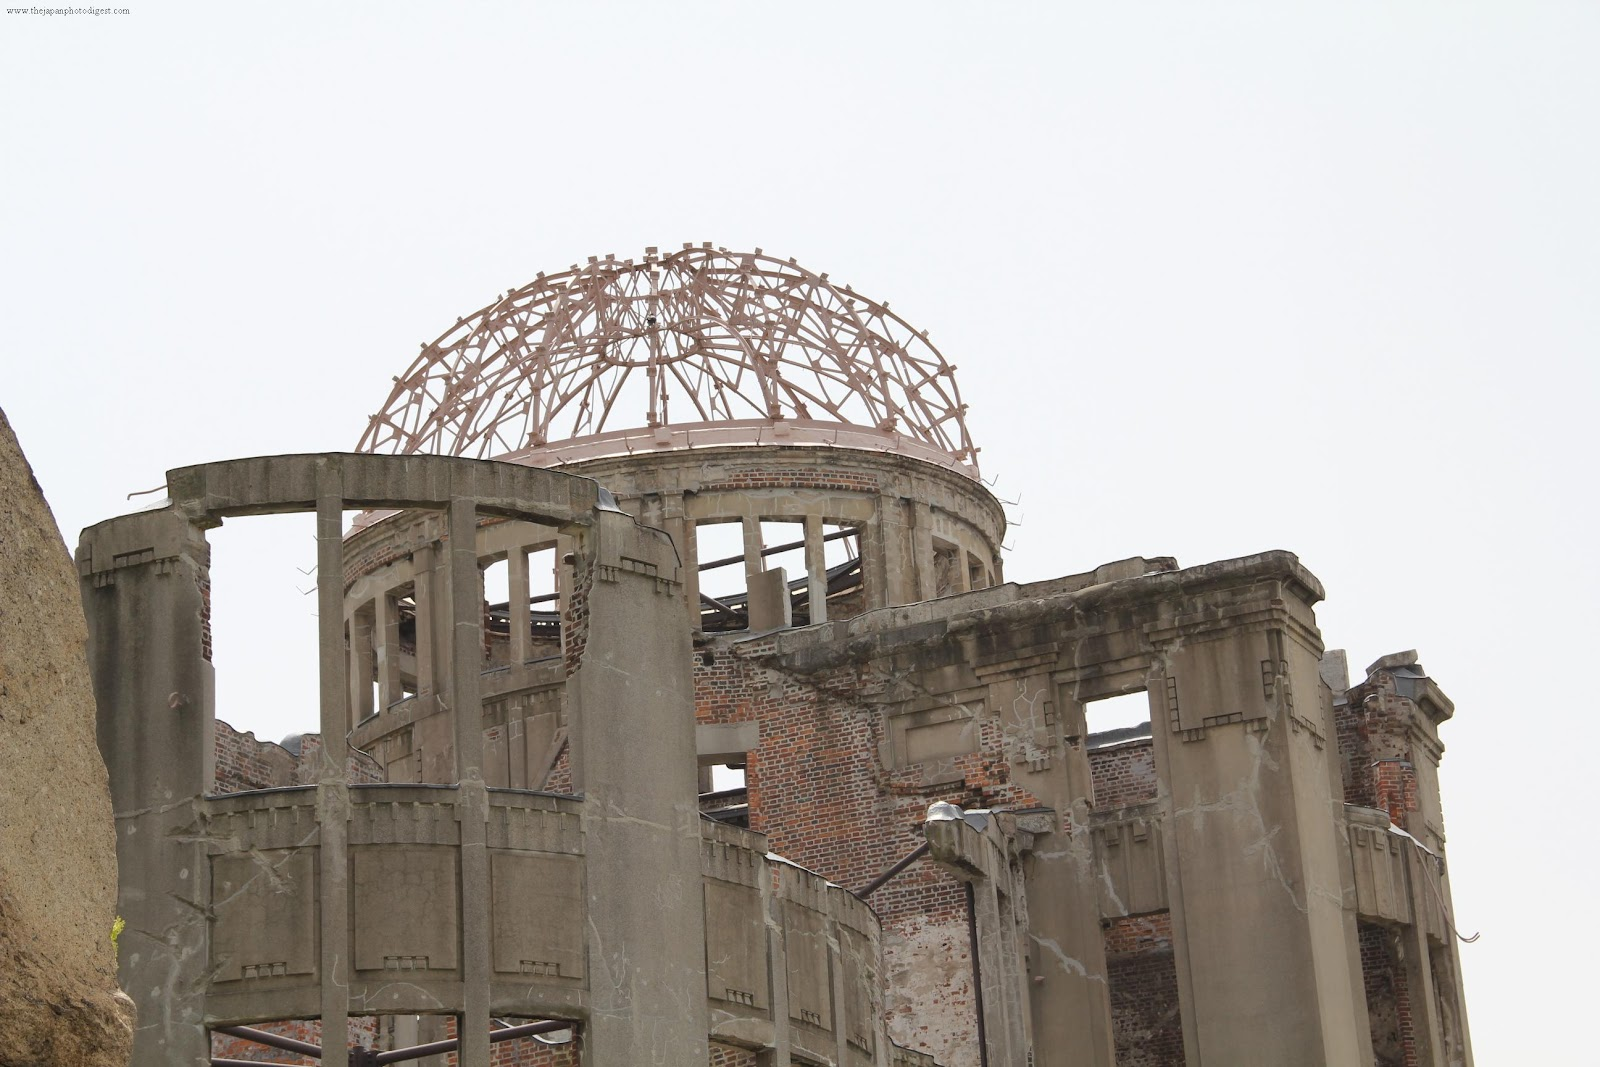 The Japan Travel Digest: Hiroshima Peace Memorial Park and Atomic Bomb Dome